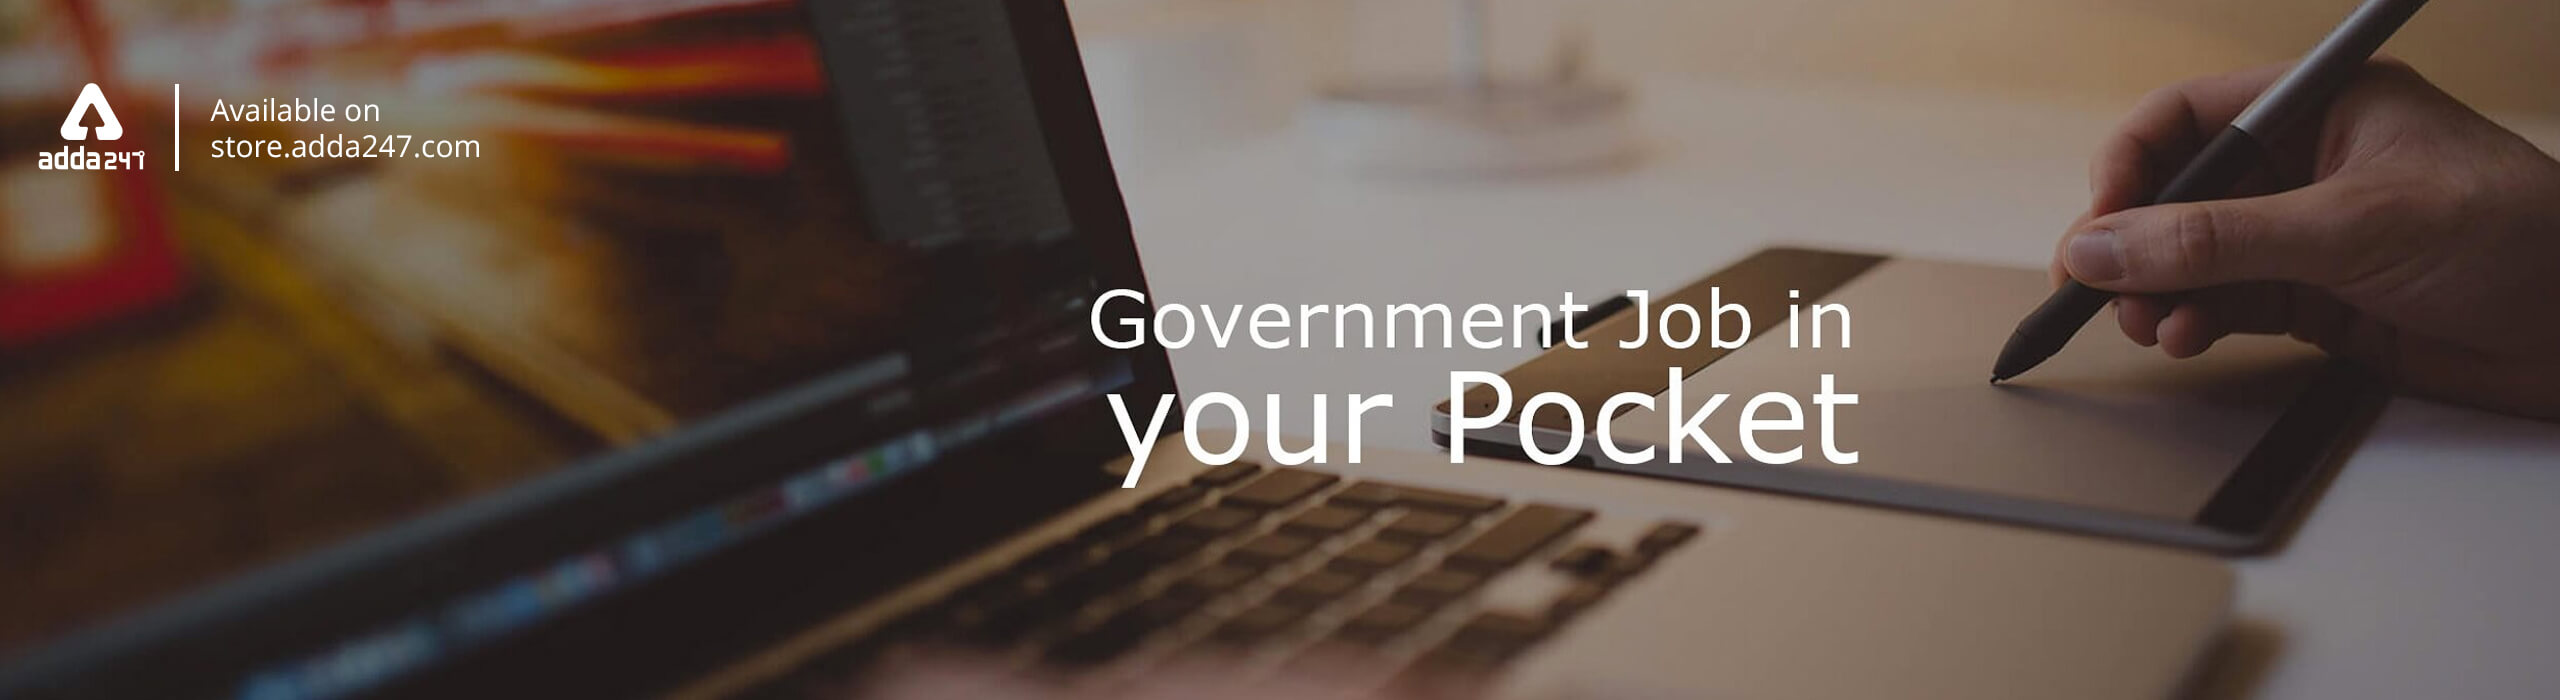 Government Job in your Pocket